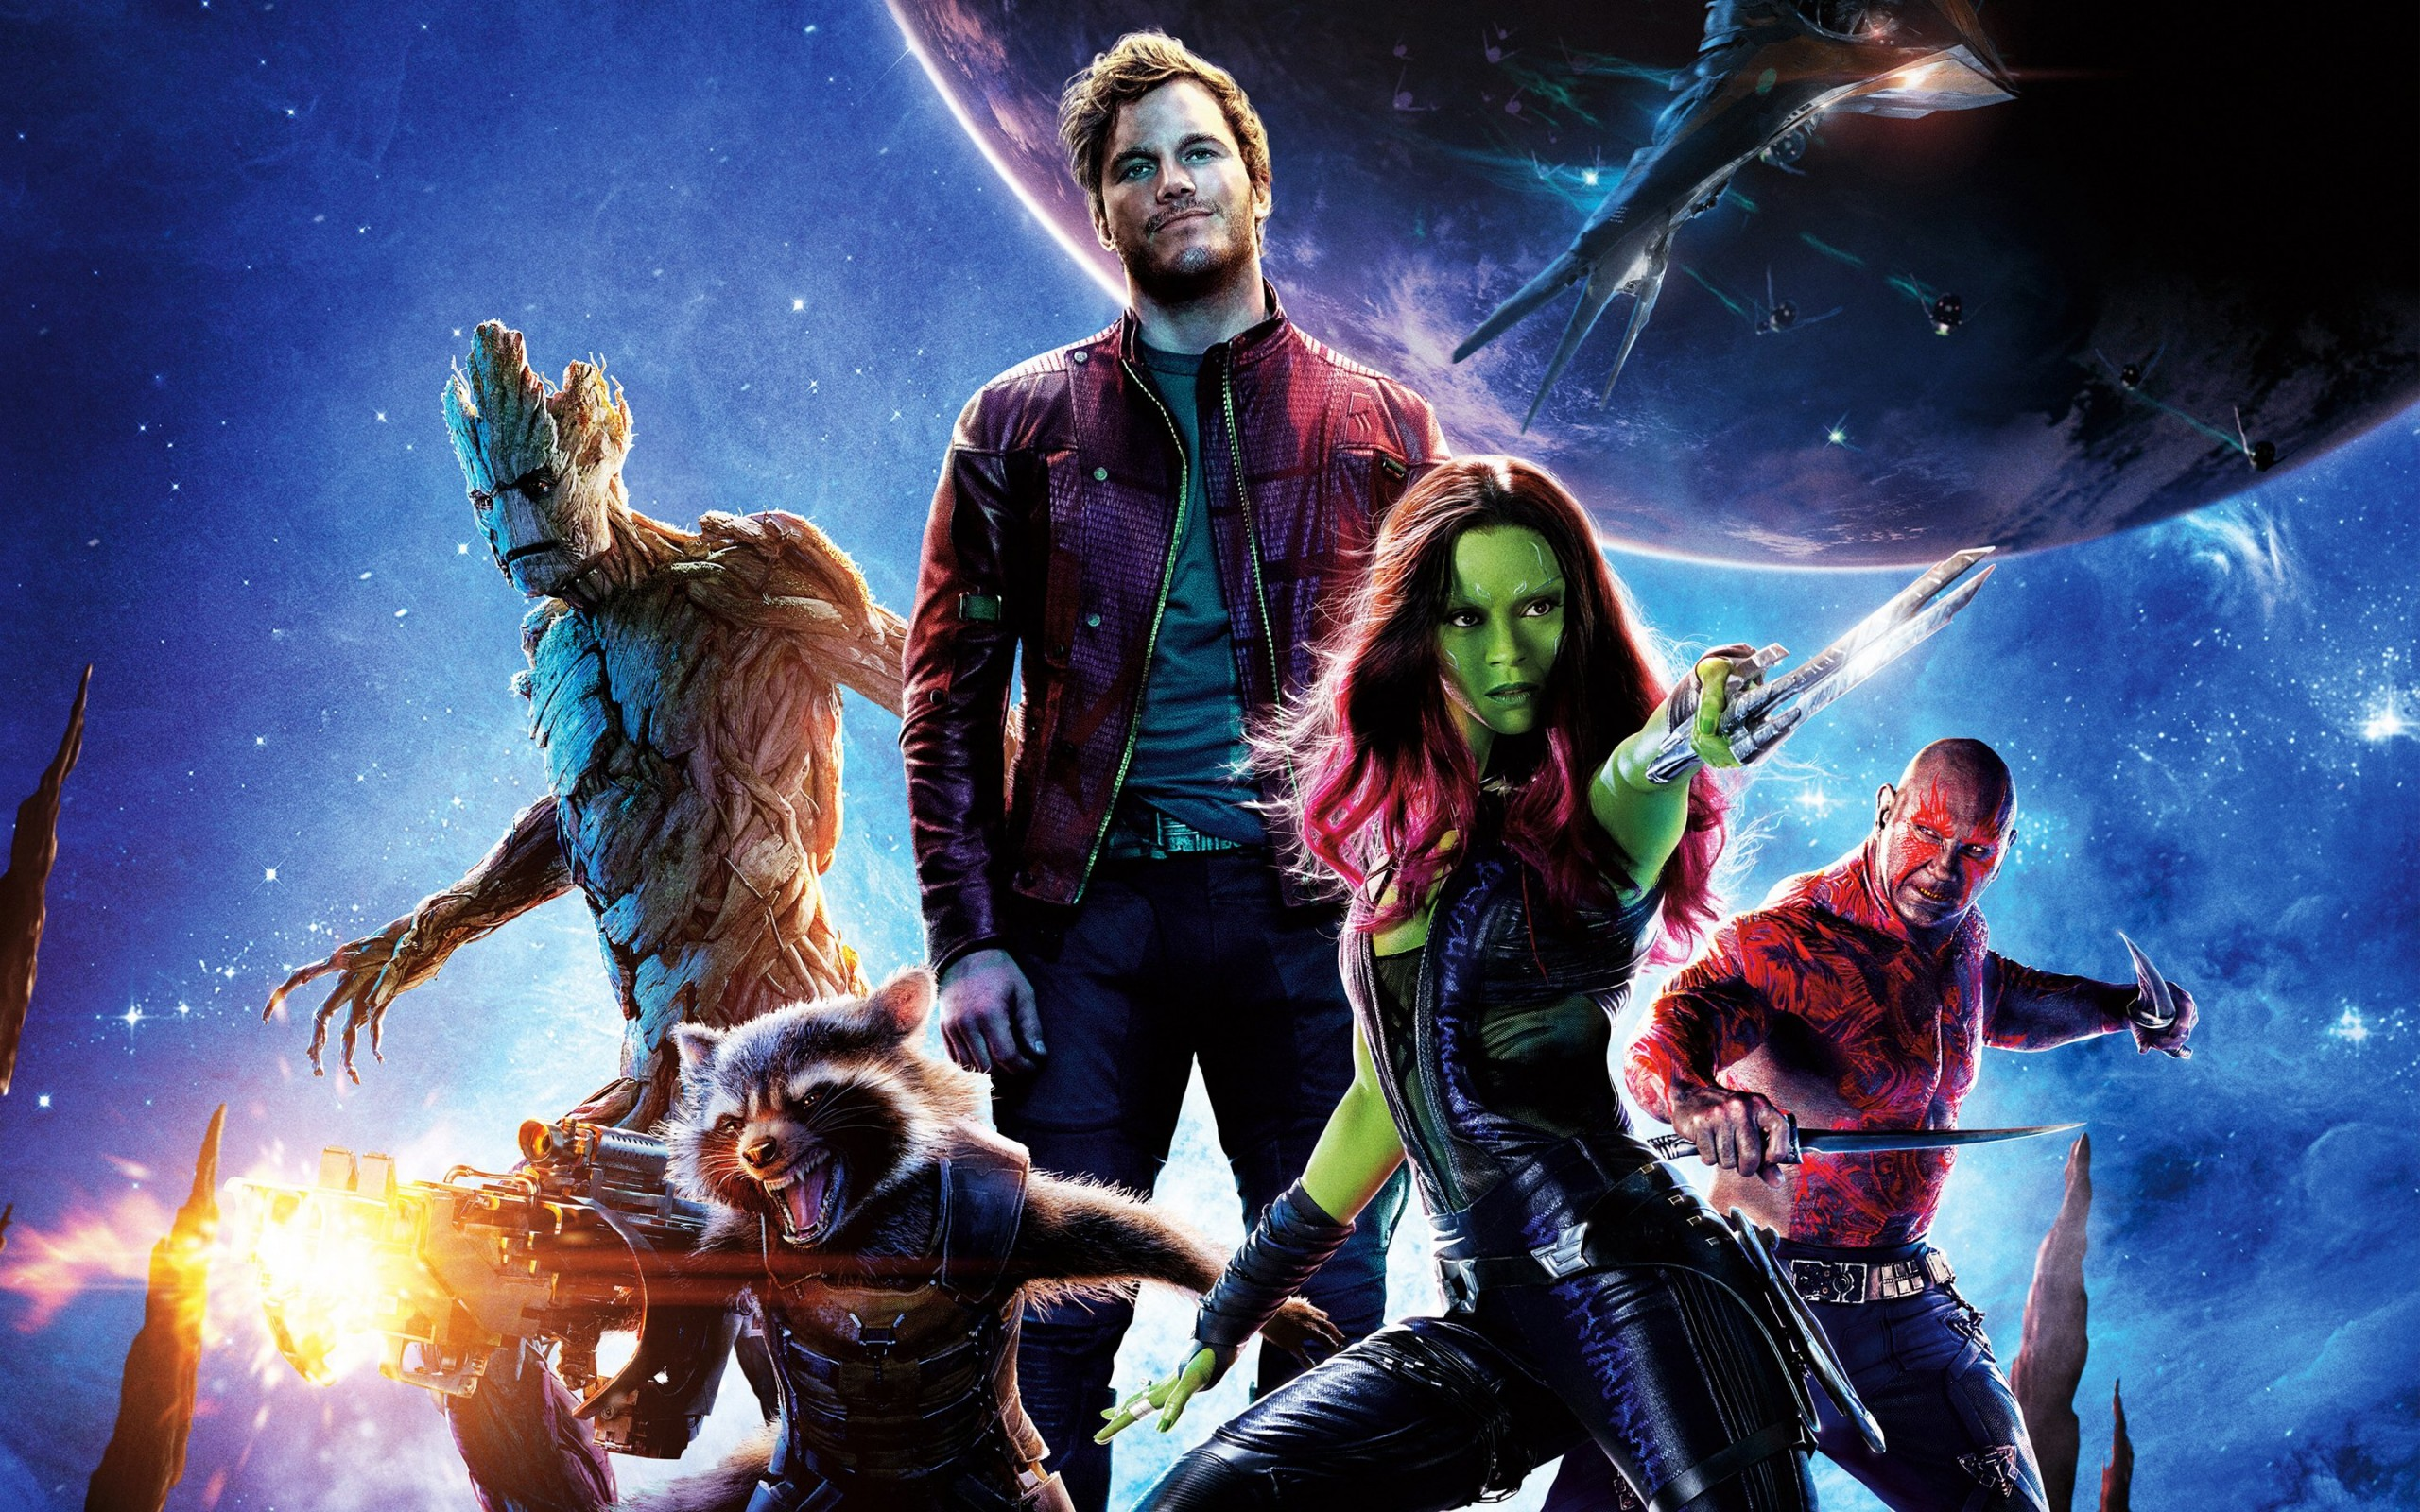 Guardians of the Galaxy Wallpaper for Desktop 2560x1600